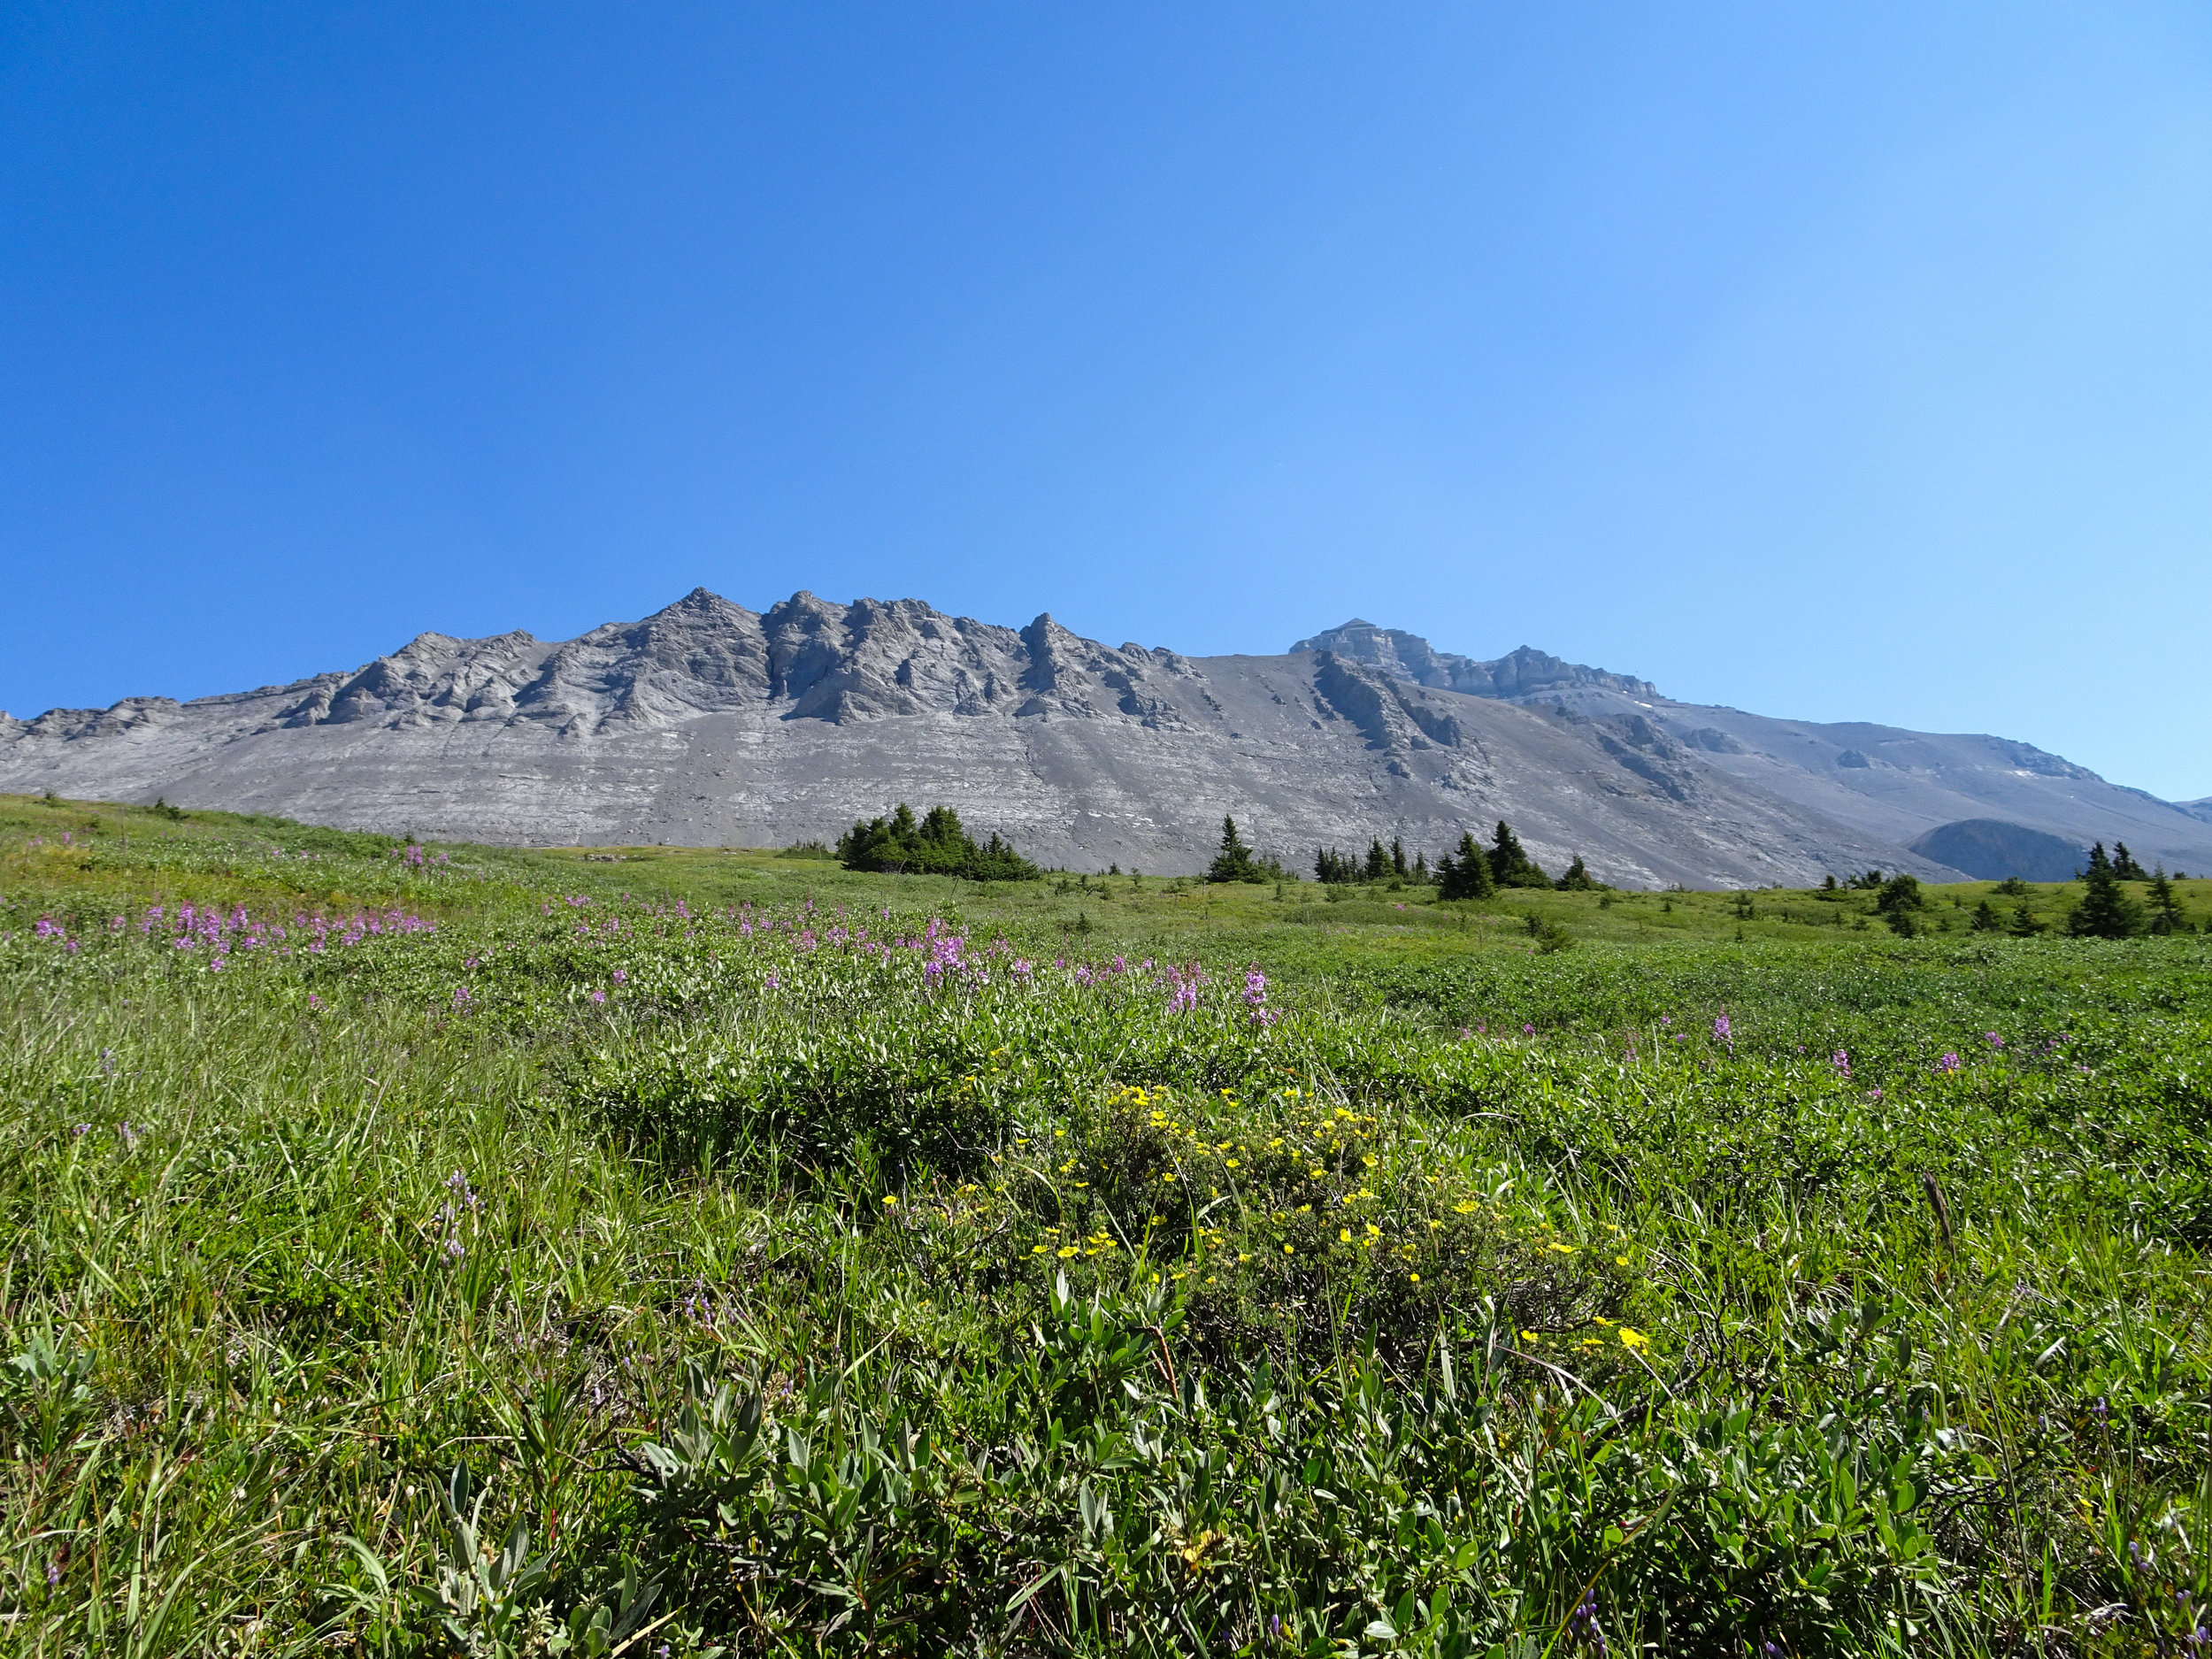 Wilcox Pass Alpine Meadow